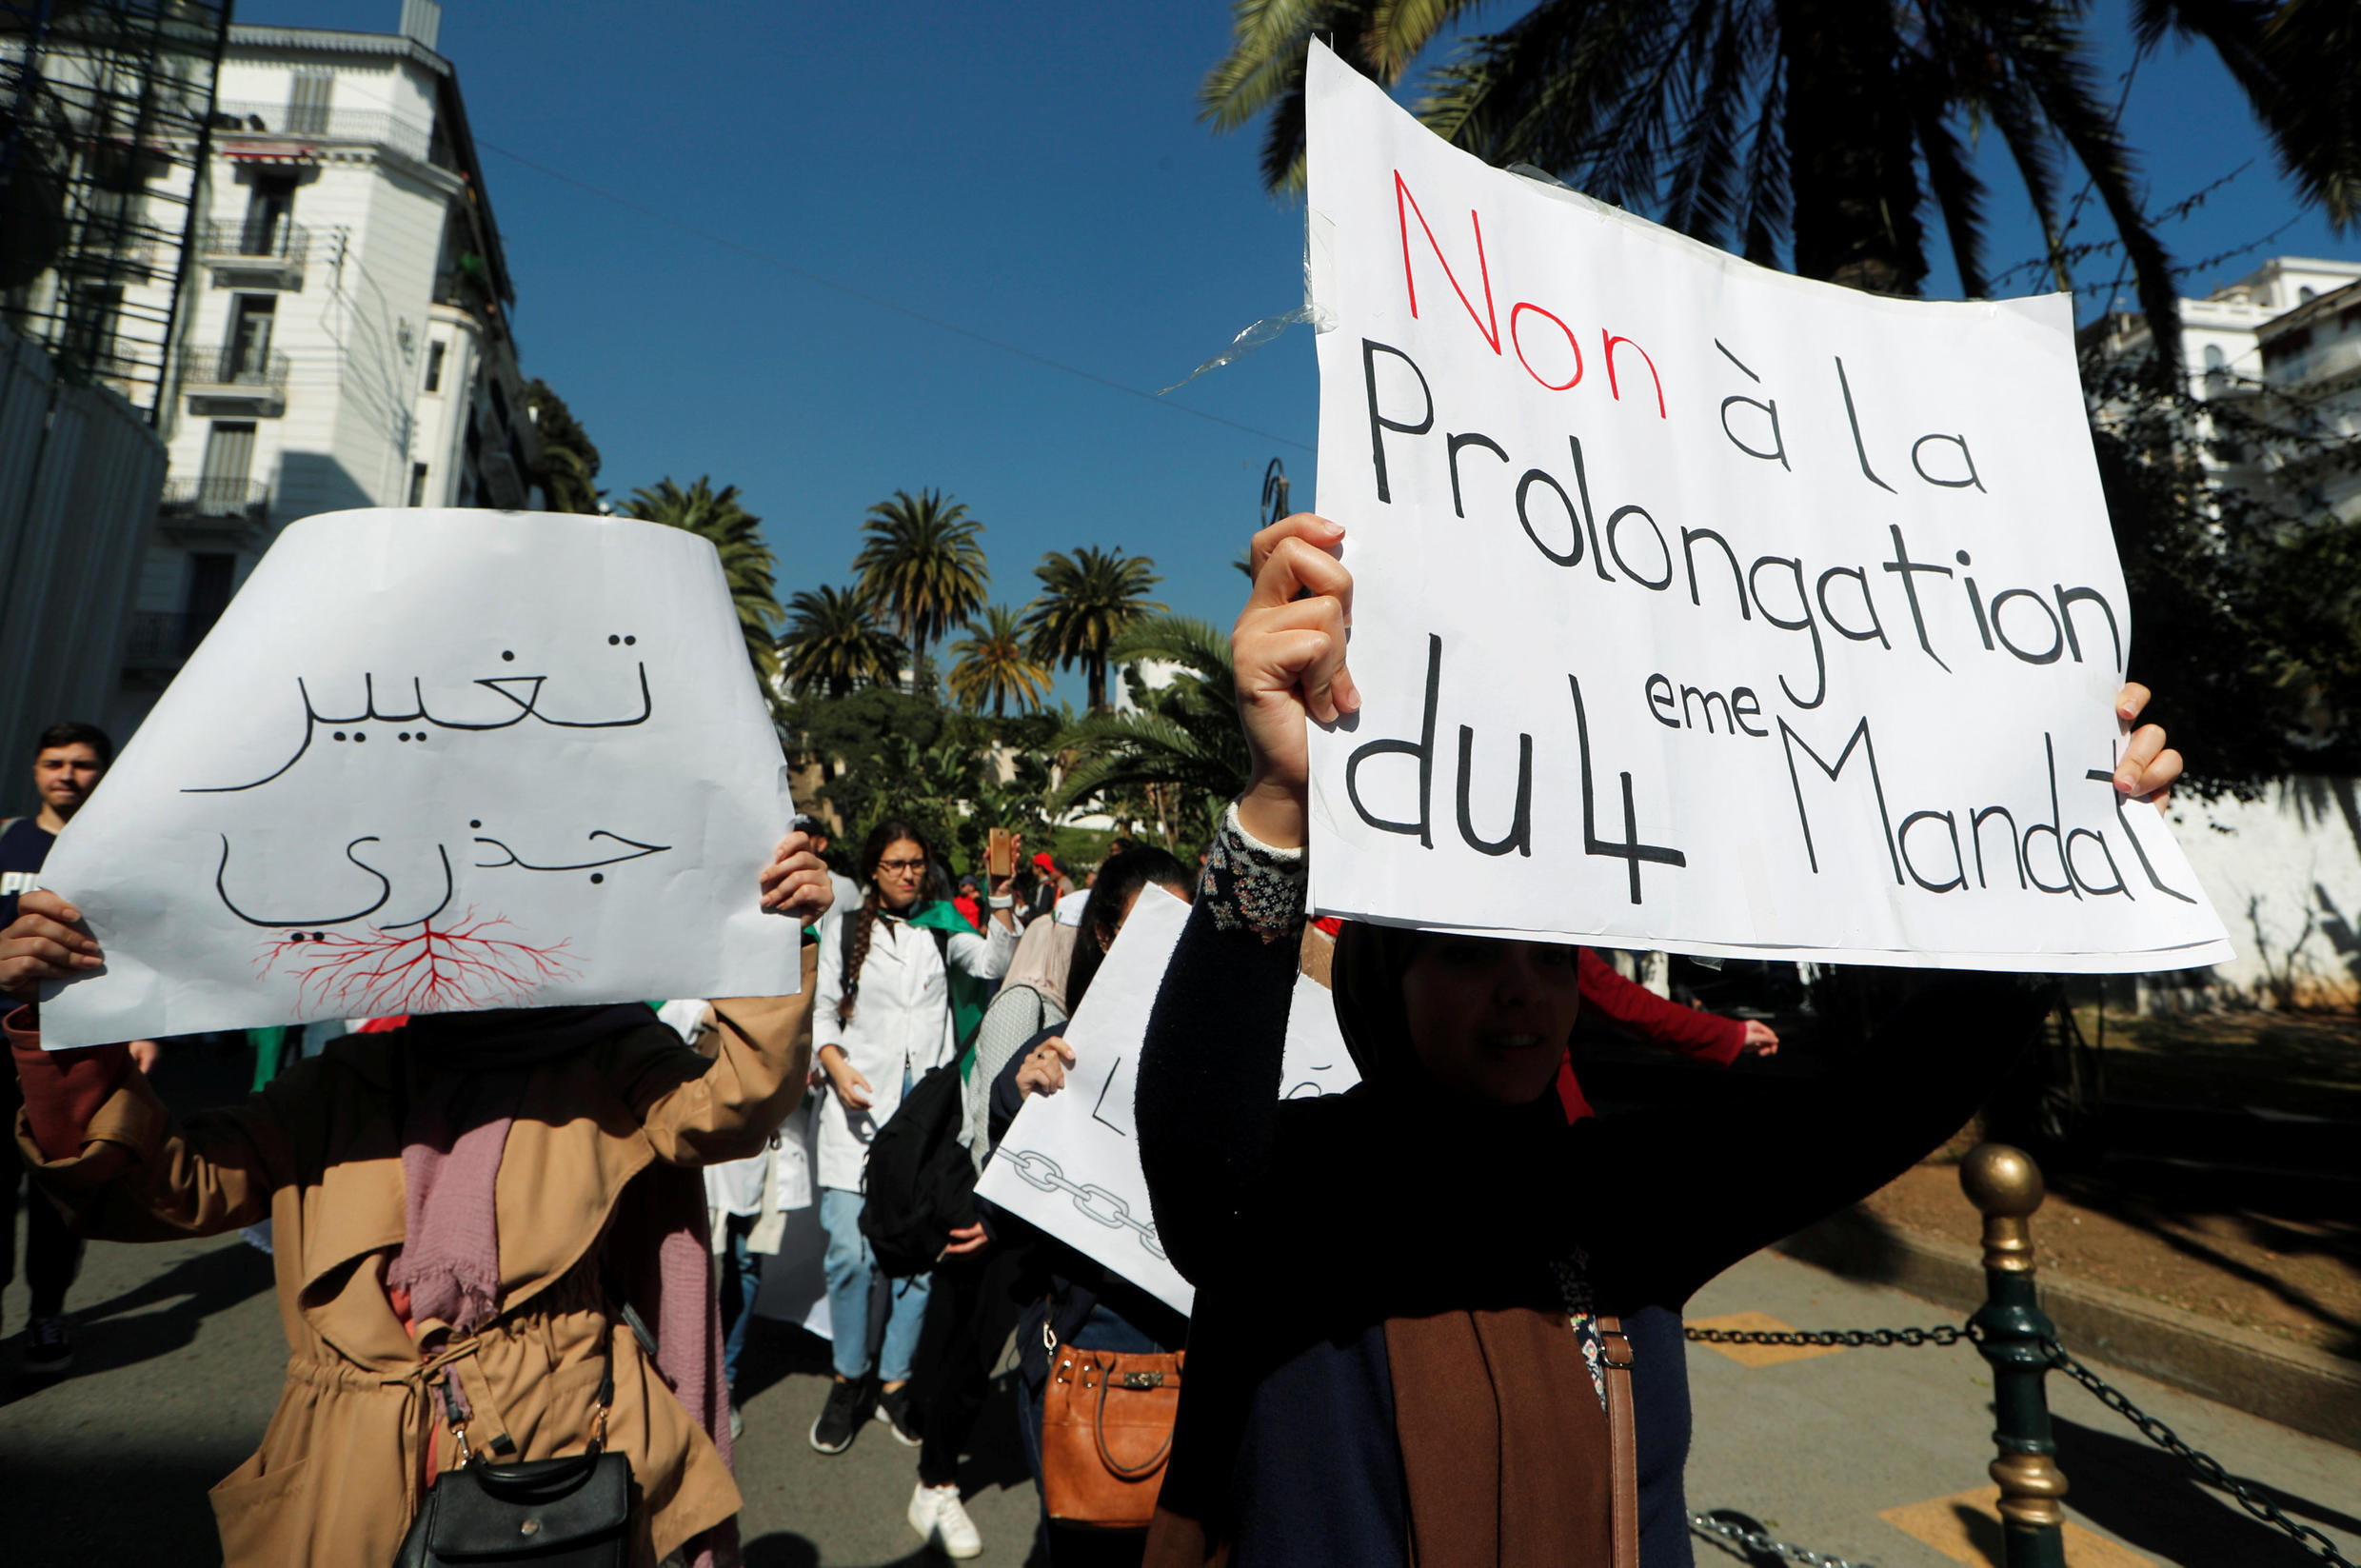 """People take part in a protest demanding immediate political change in Algiers on March 12, 2019. Signs read """"Radical change"""" and """"No extension to the 4th term""""."""